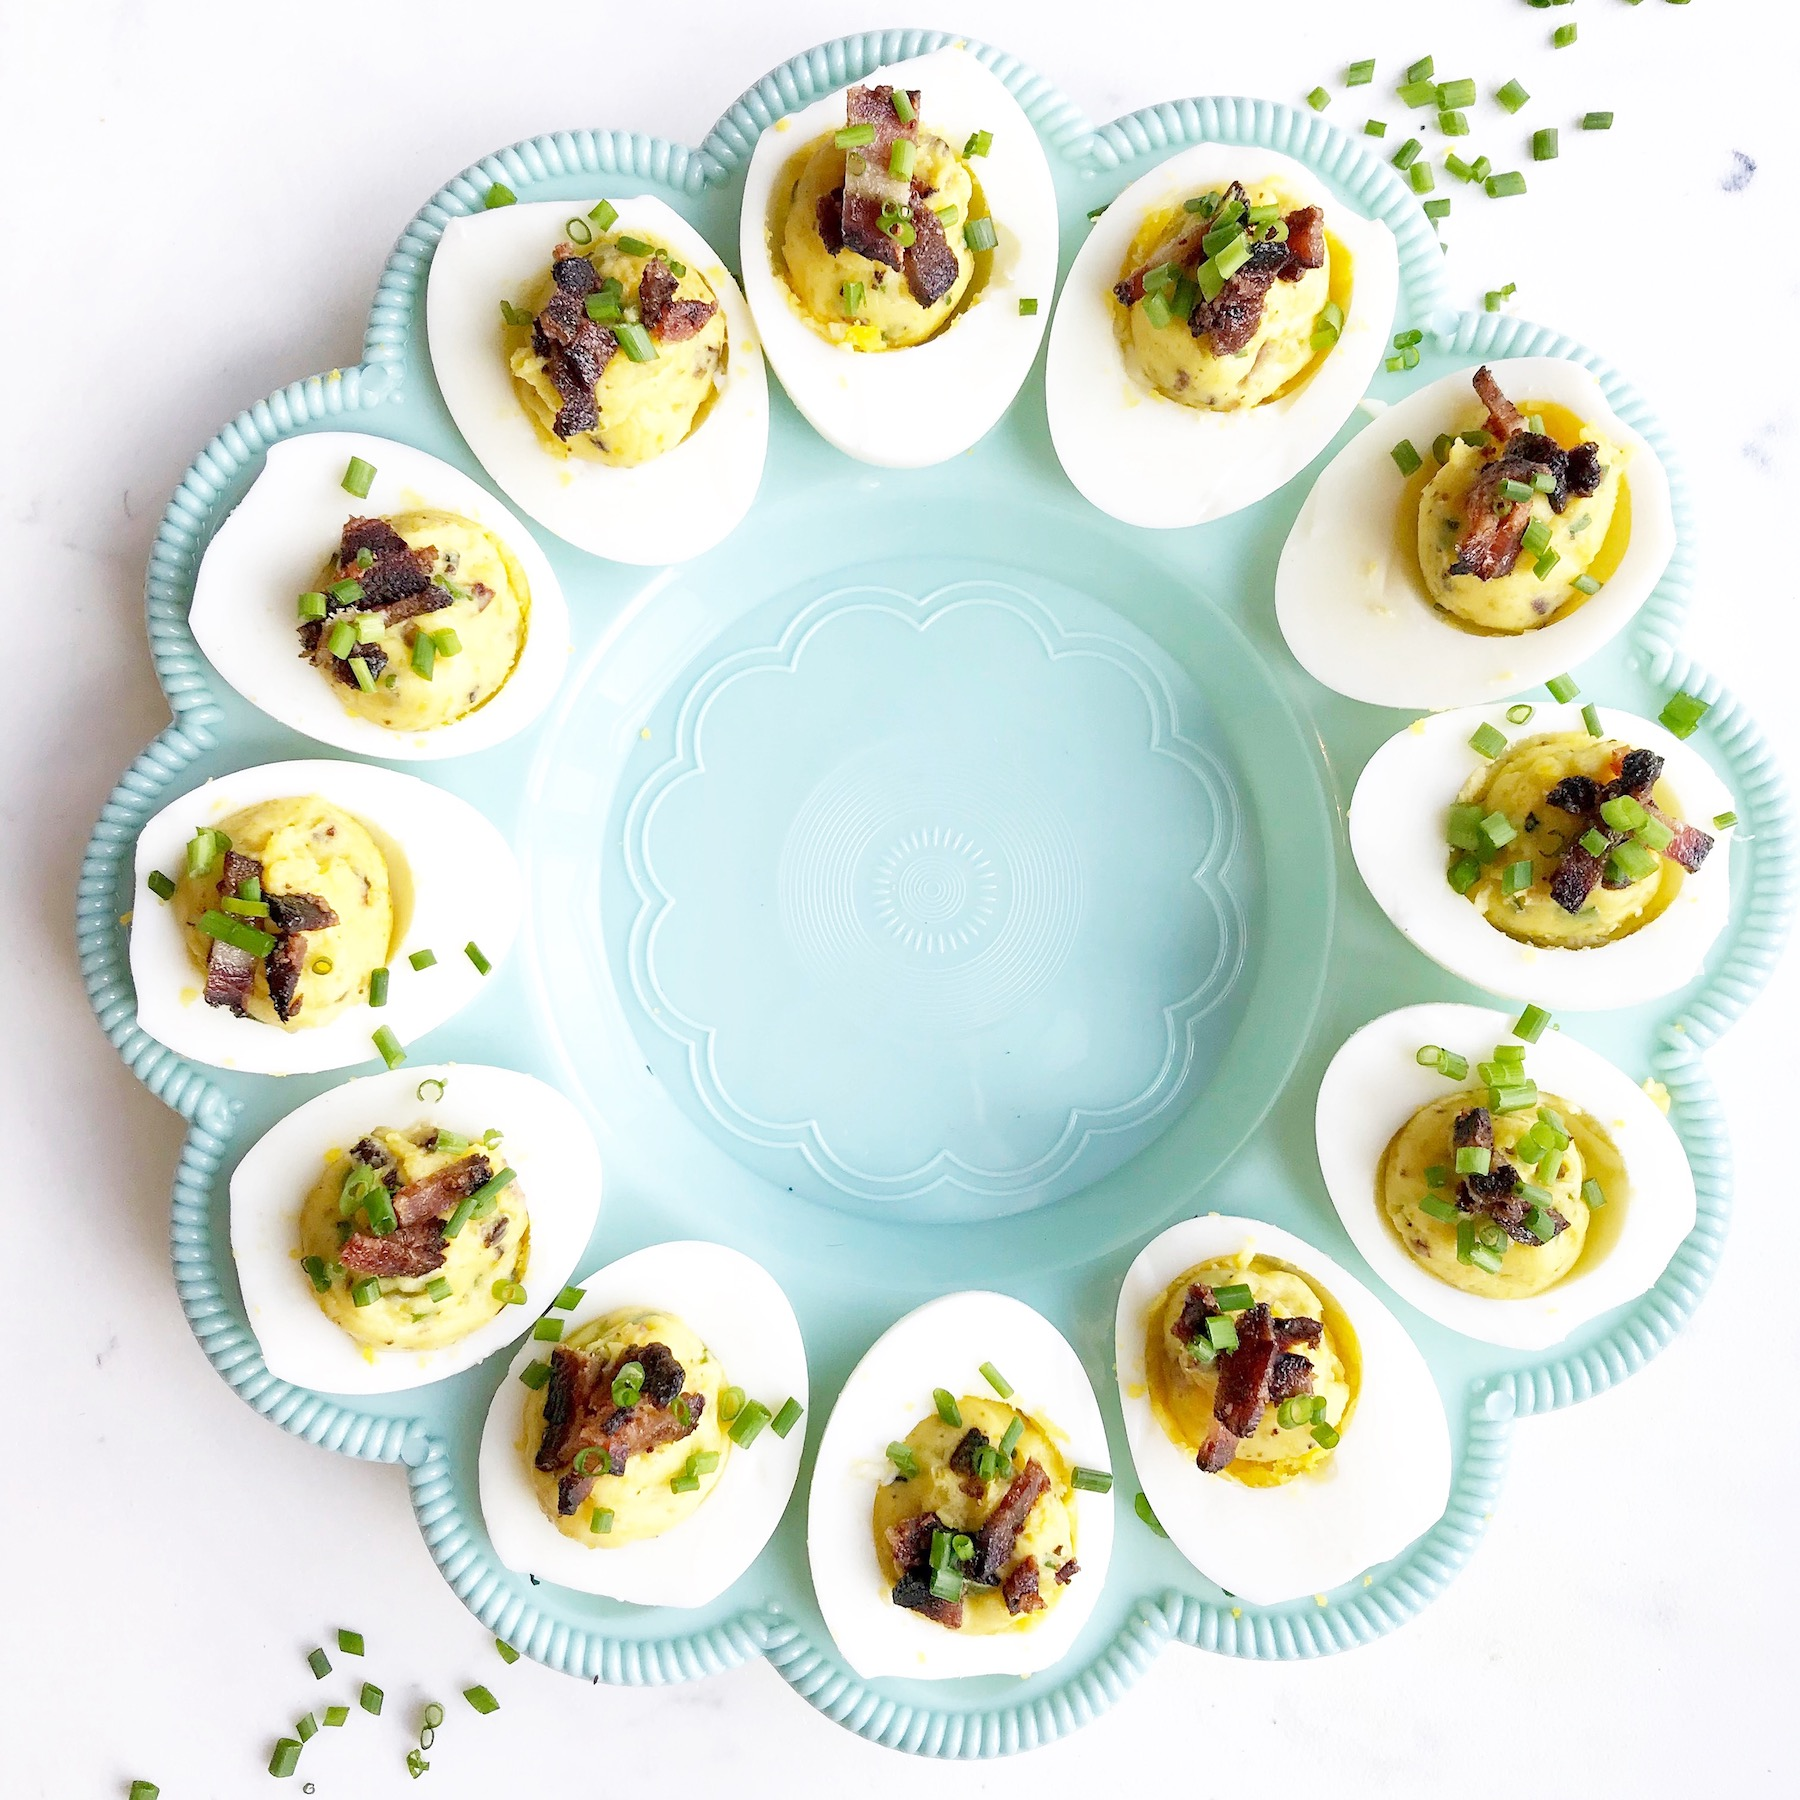 The perfect deviled eggs with blackforest bacon